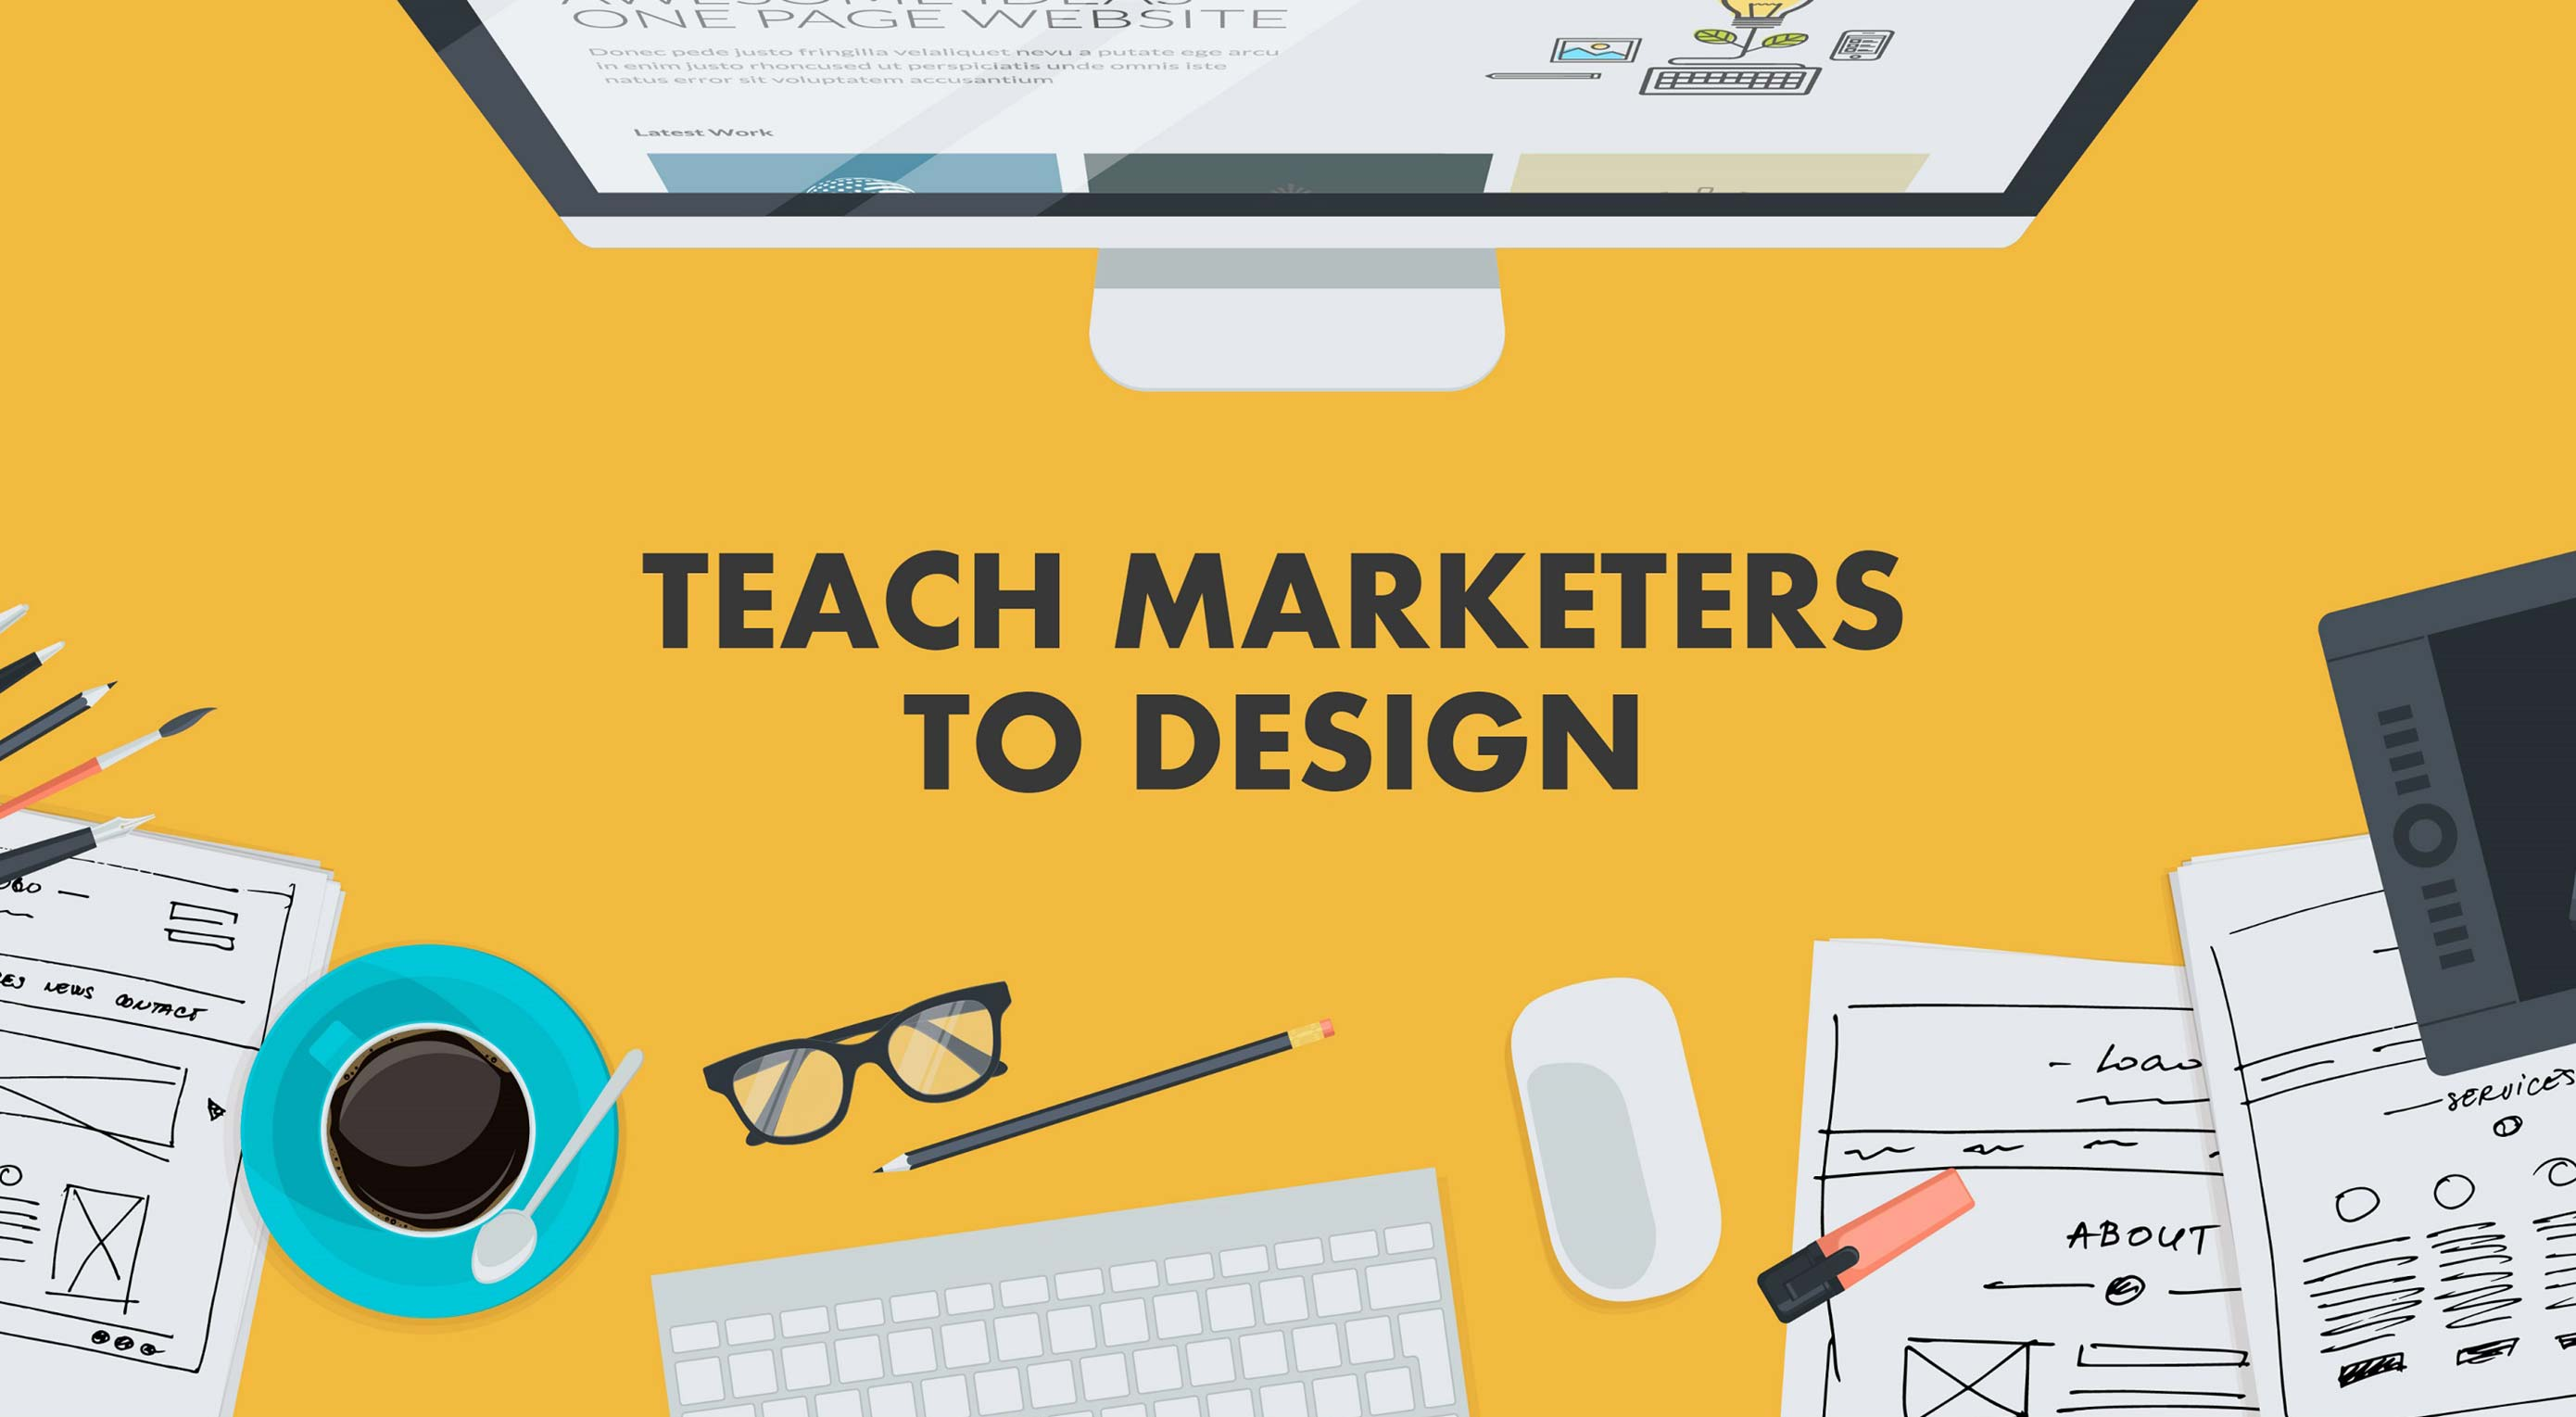 How to Teach Marketers to Design: 3 Tips and 4 Essential Tools